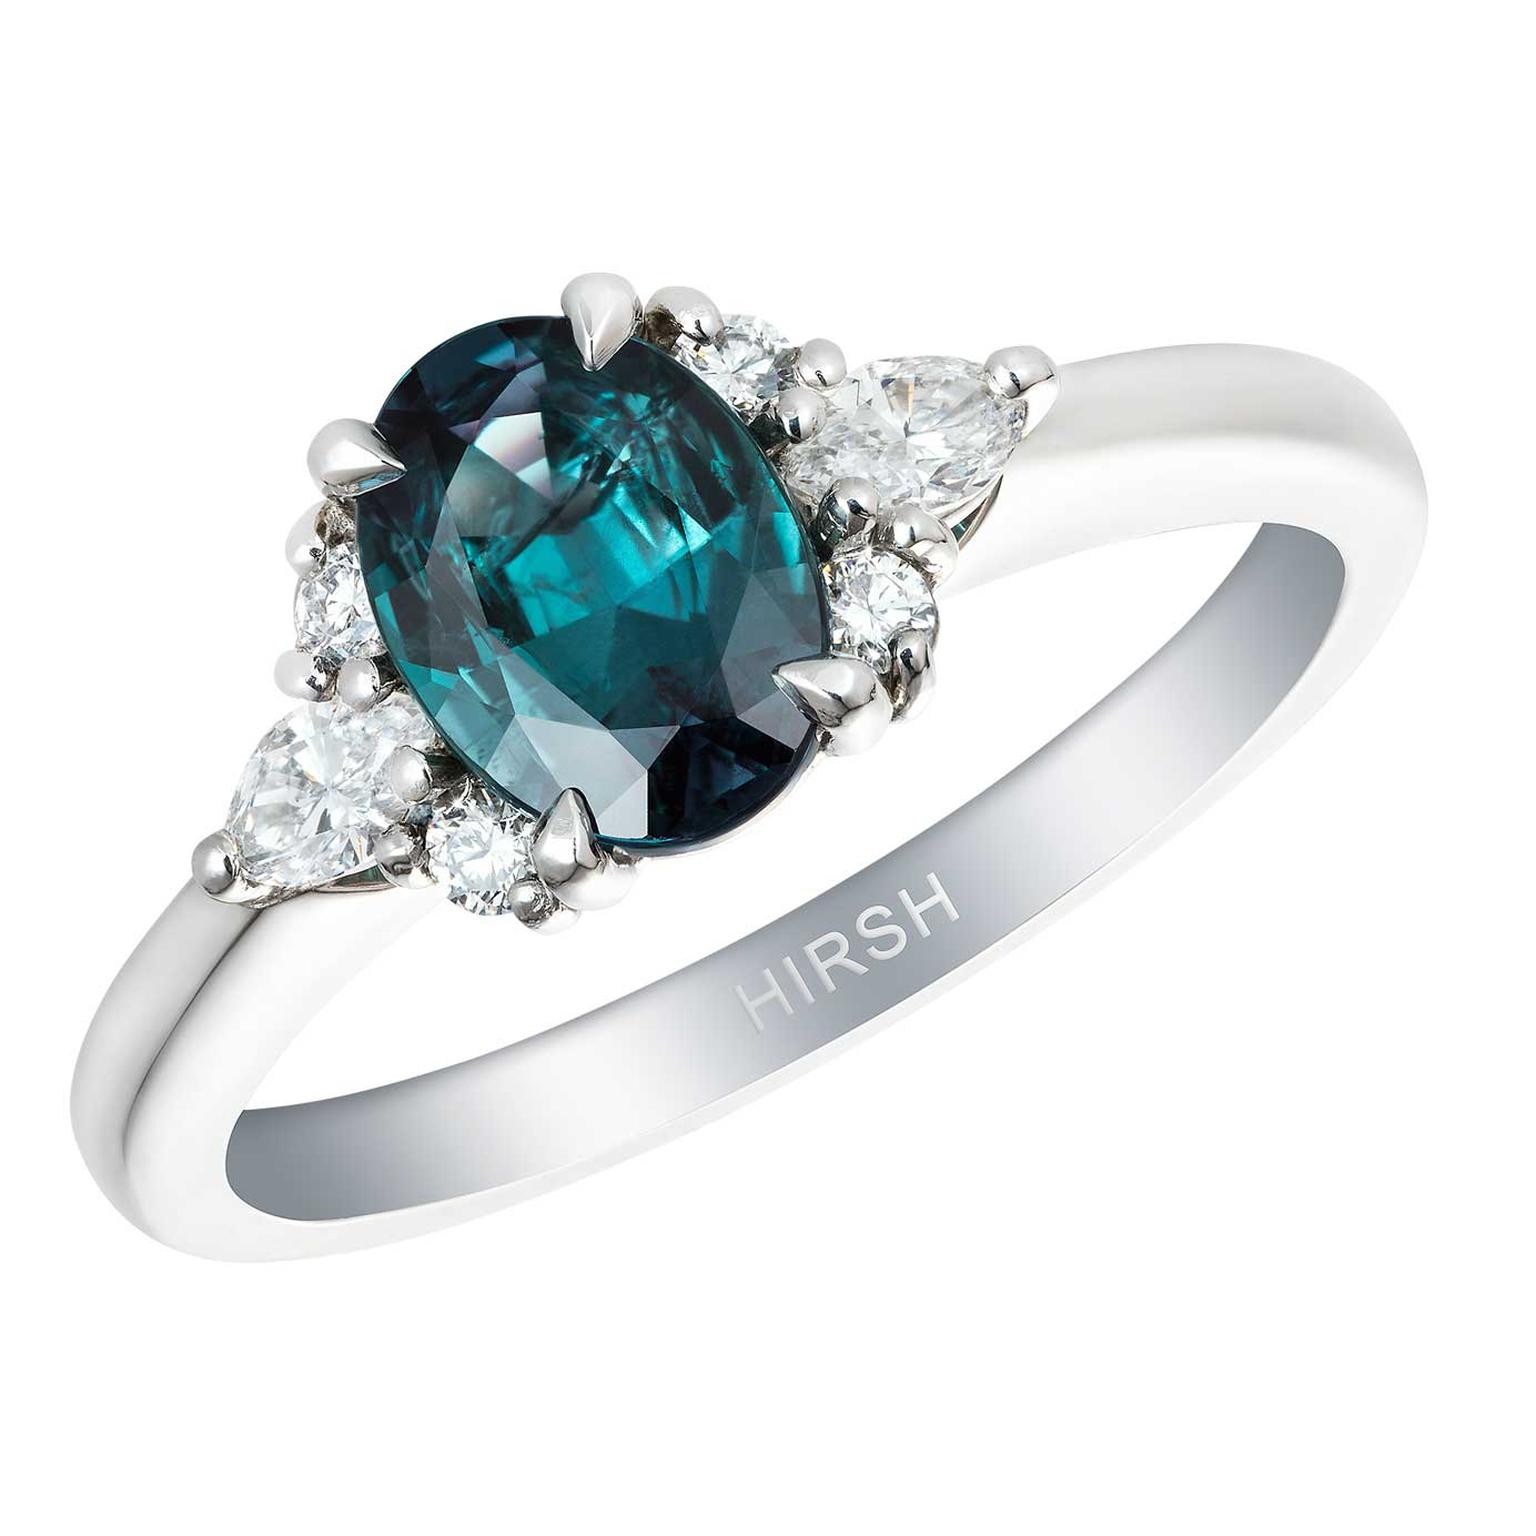 Papillon ring by Hirsh London with Alexandrite